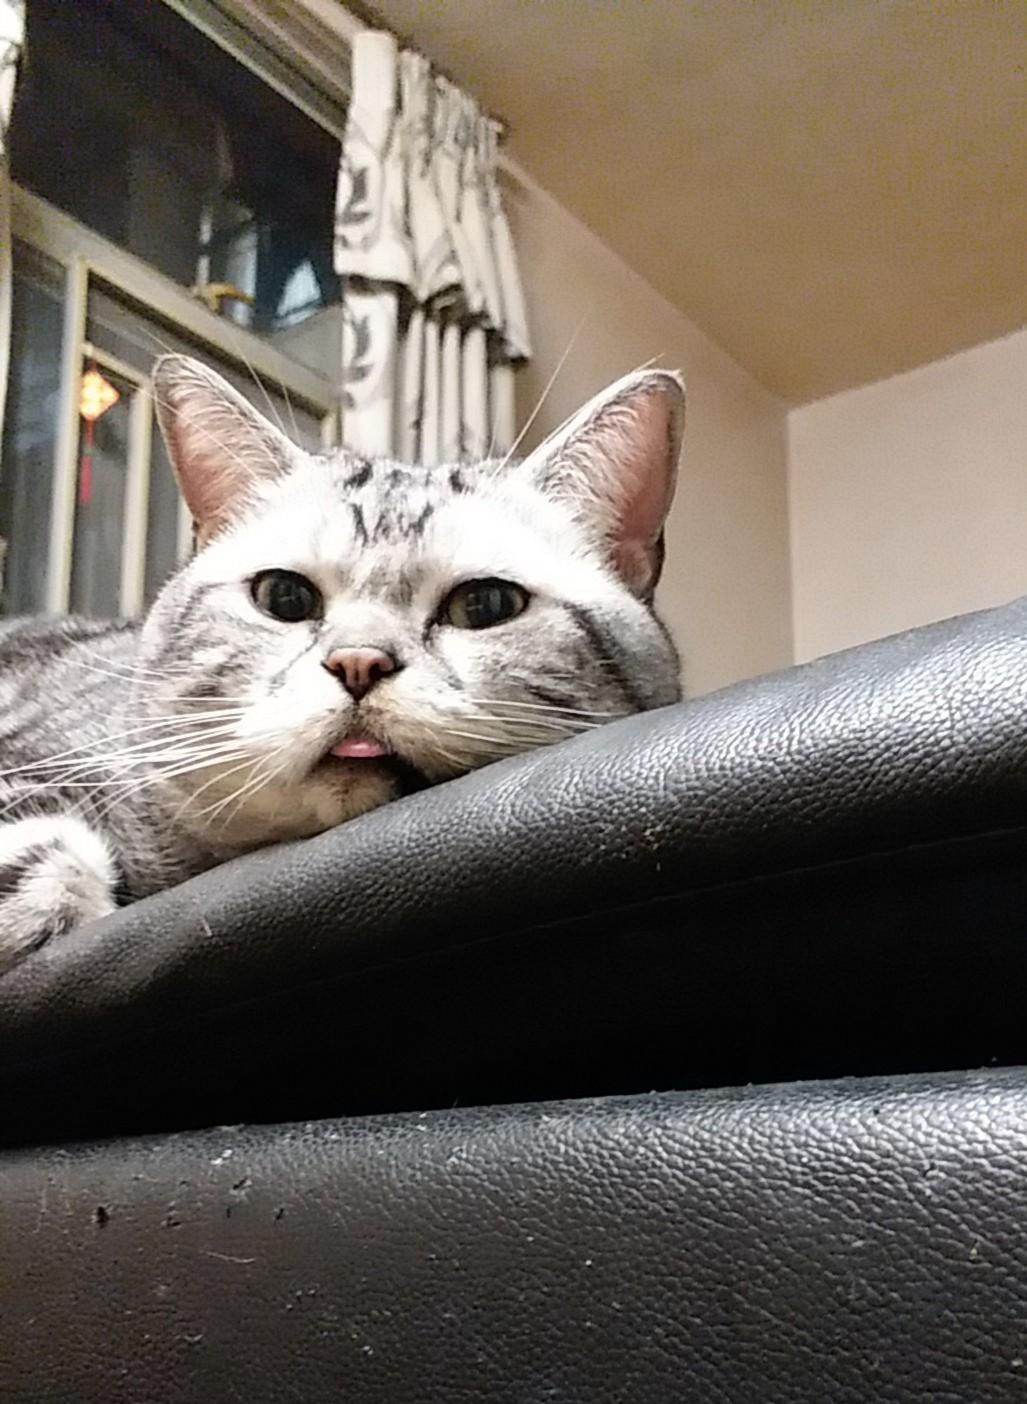 Pin By Rumah Minimalis Rubymoon On Gatititoooos Cute Cat Gif Kittens Cutest Animal Rescue Stories